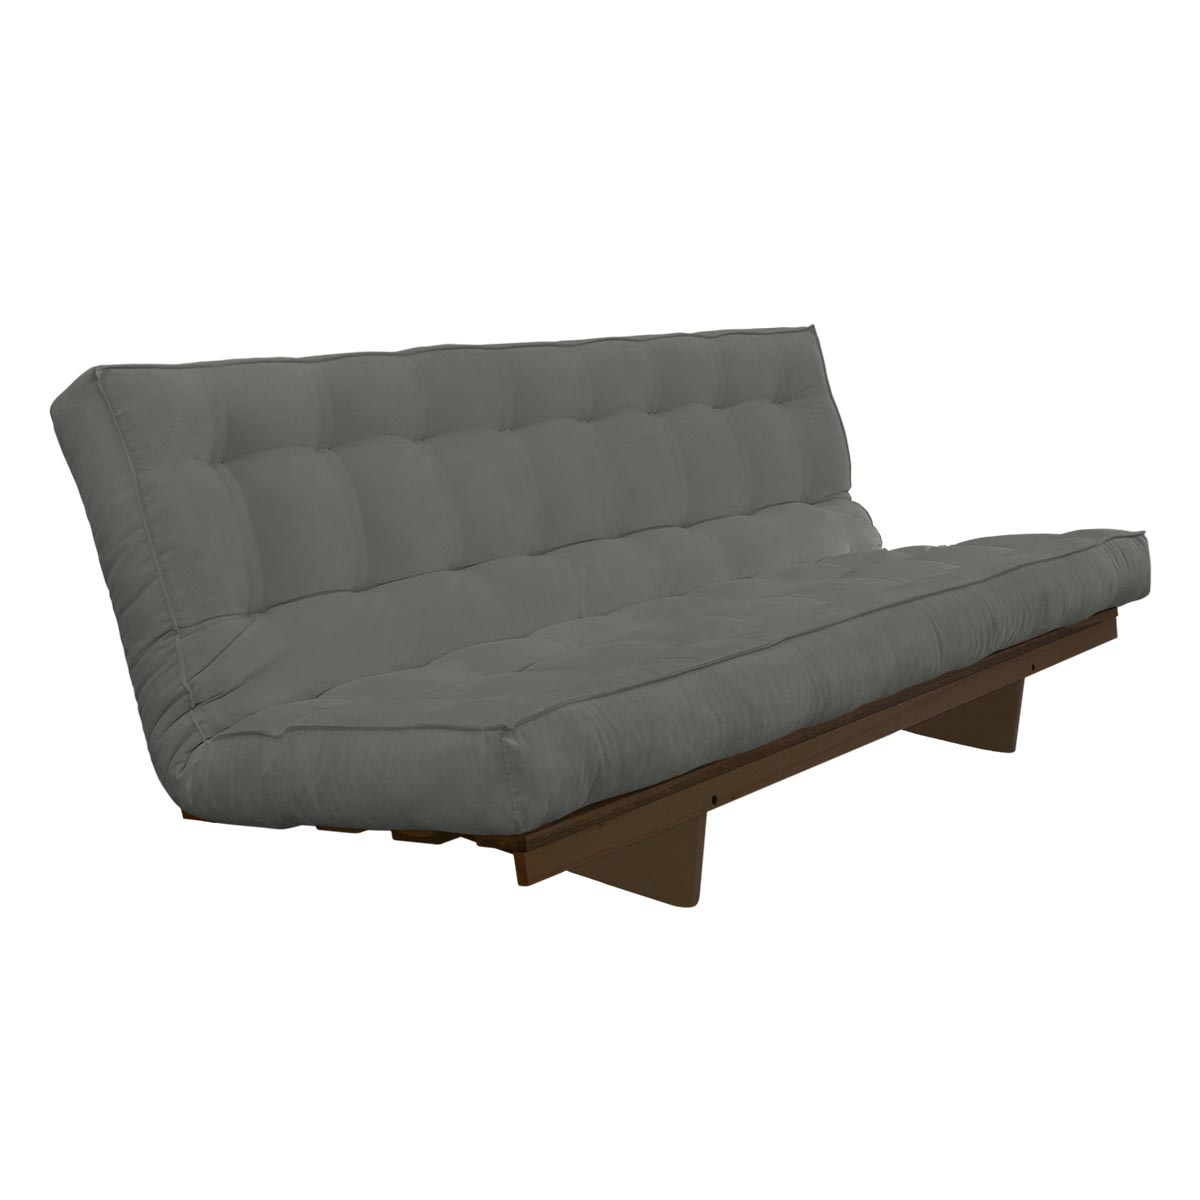 Sofa camas casal futon company for Sofa cama 180 ancho